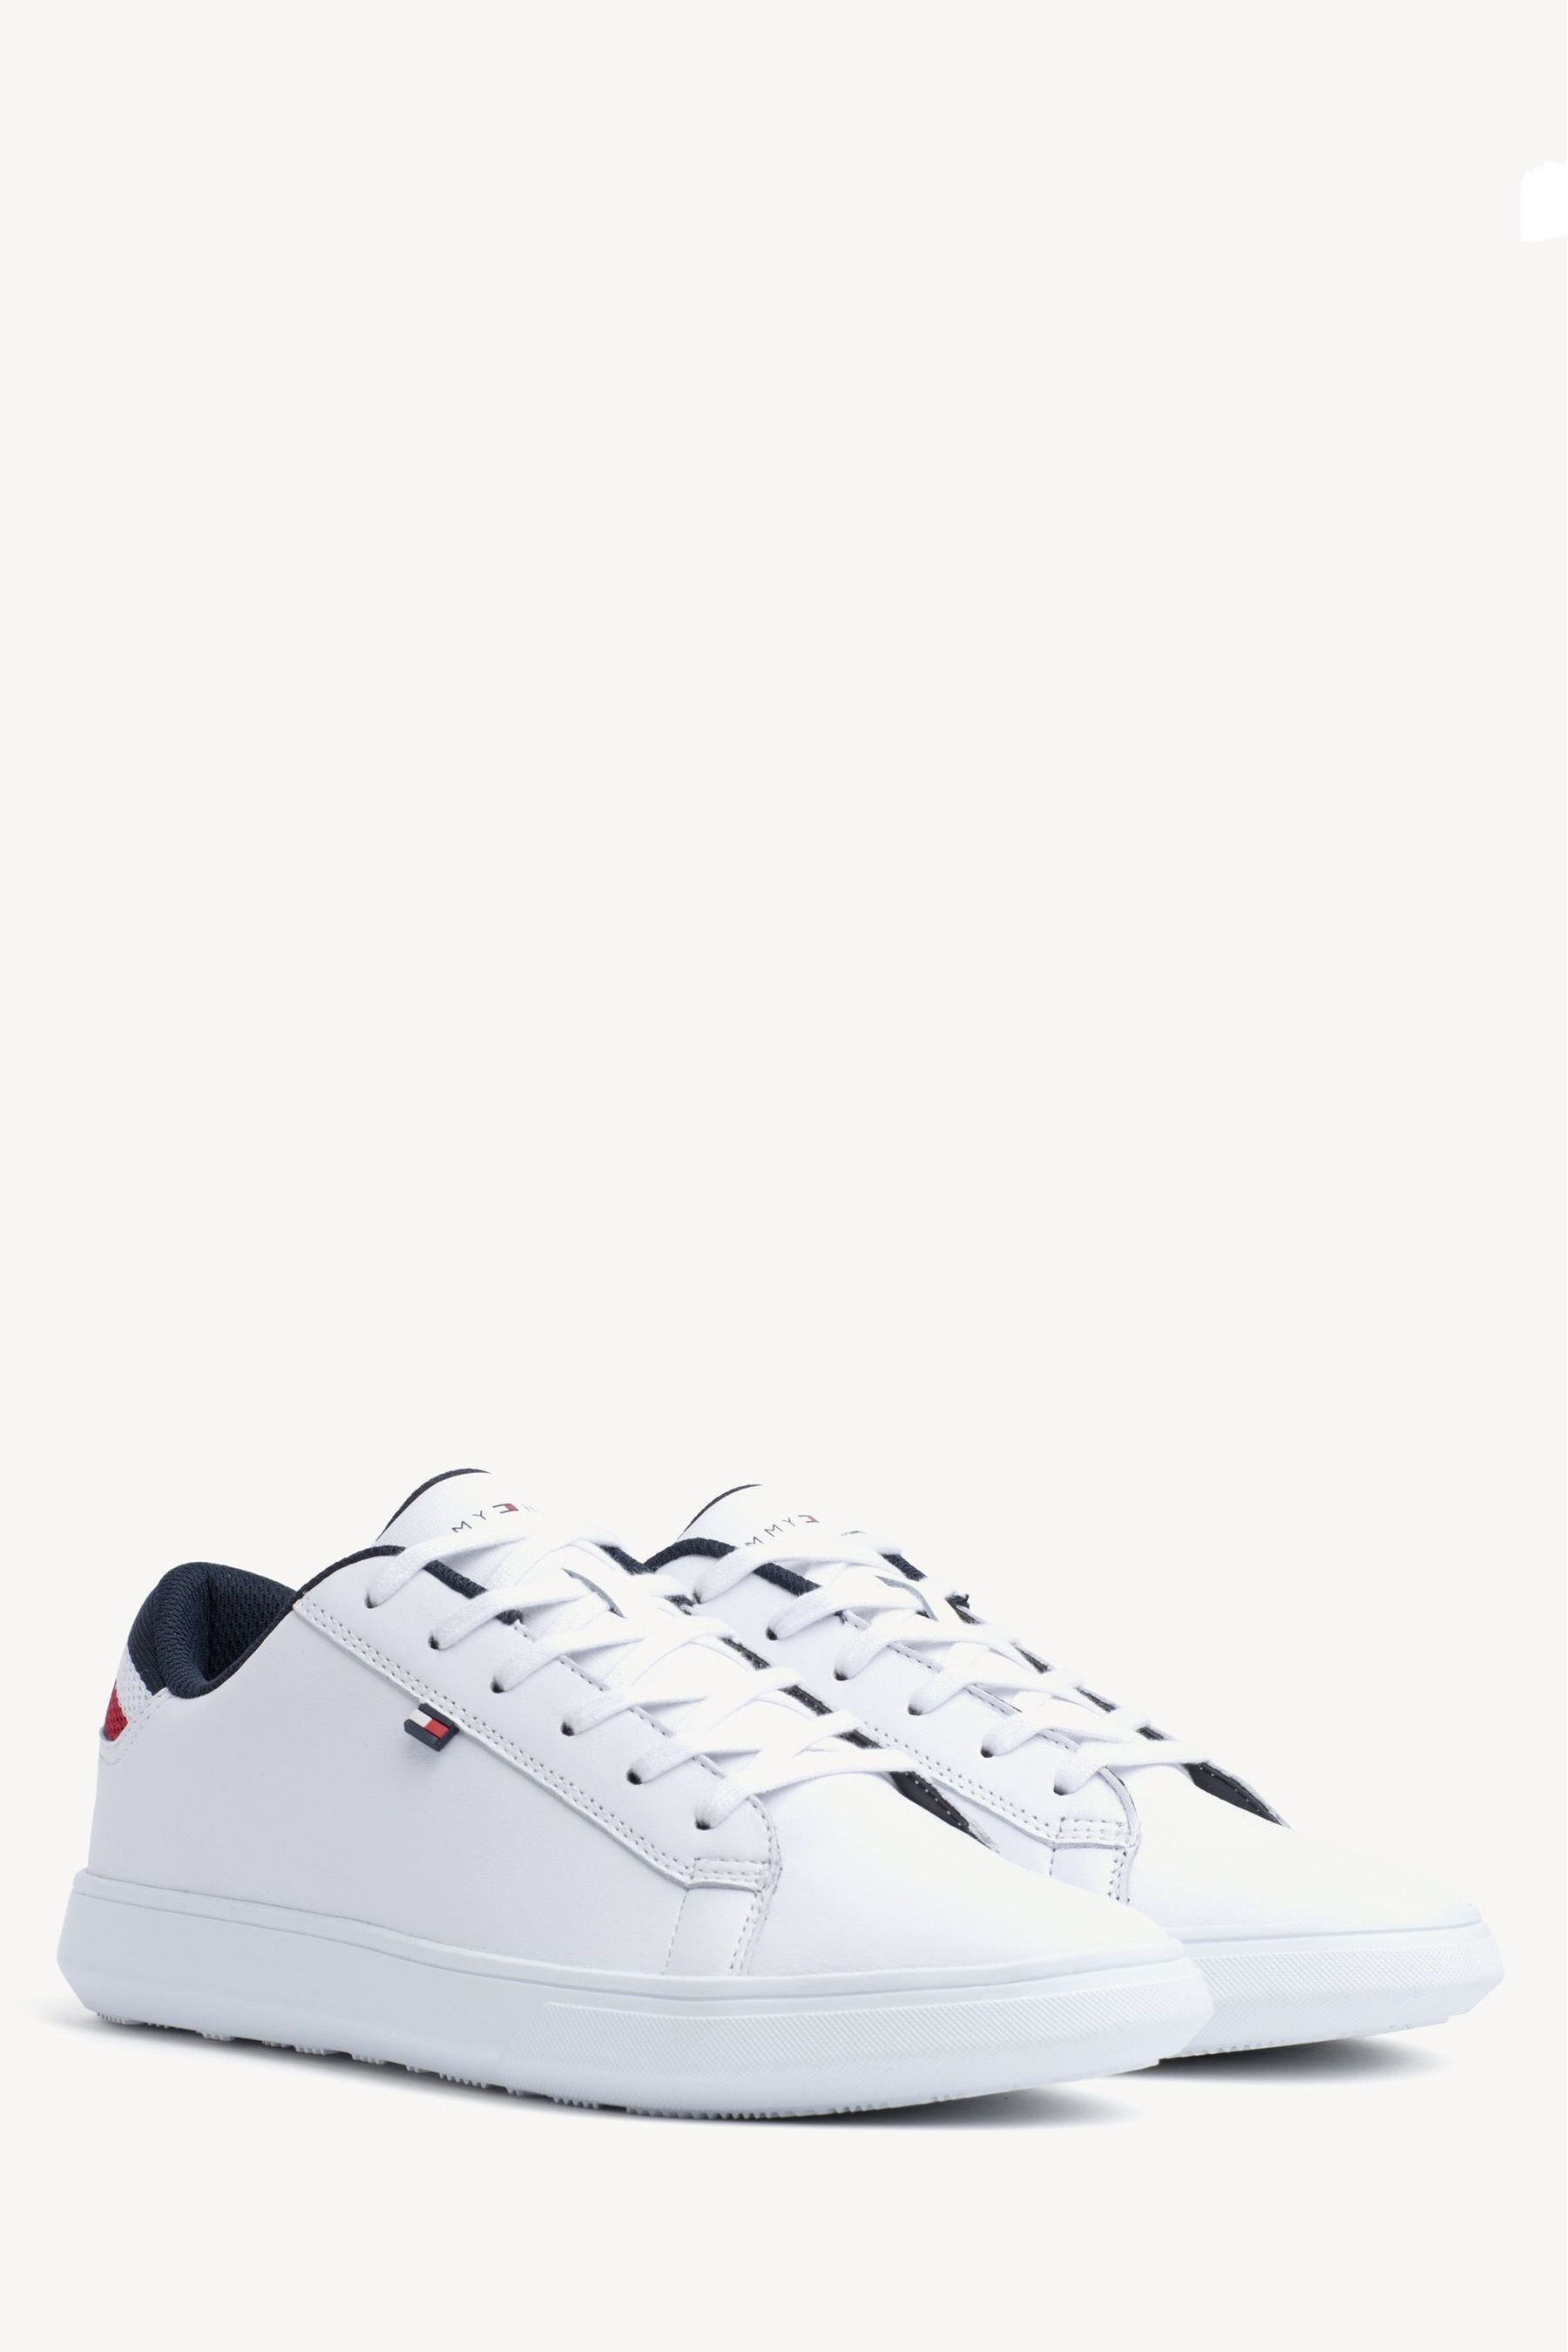 Tommy Hilfiger Men/'s Essential Leather Trainers White